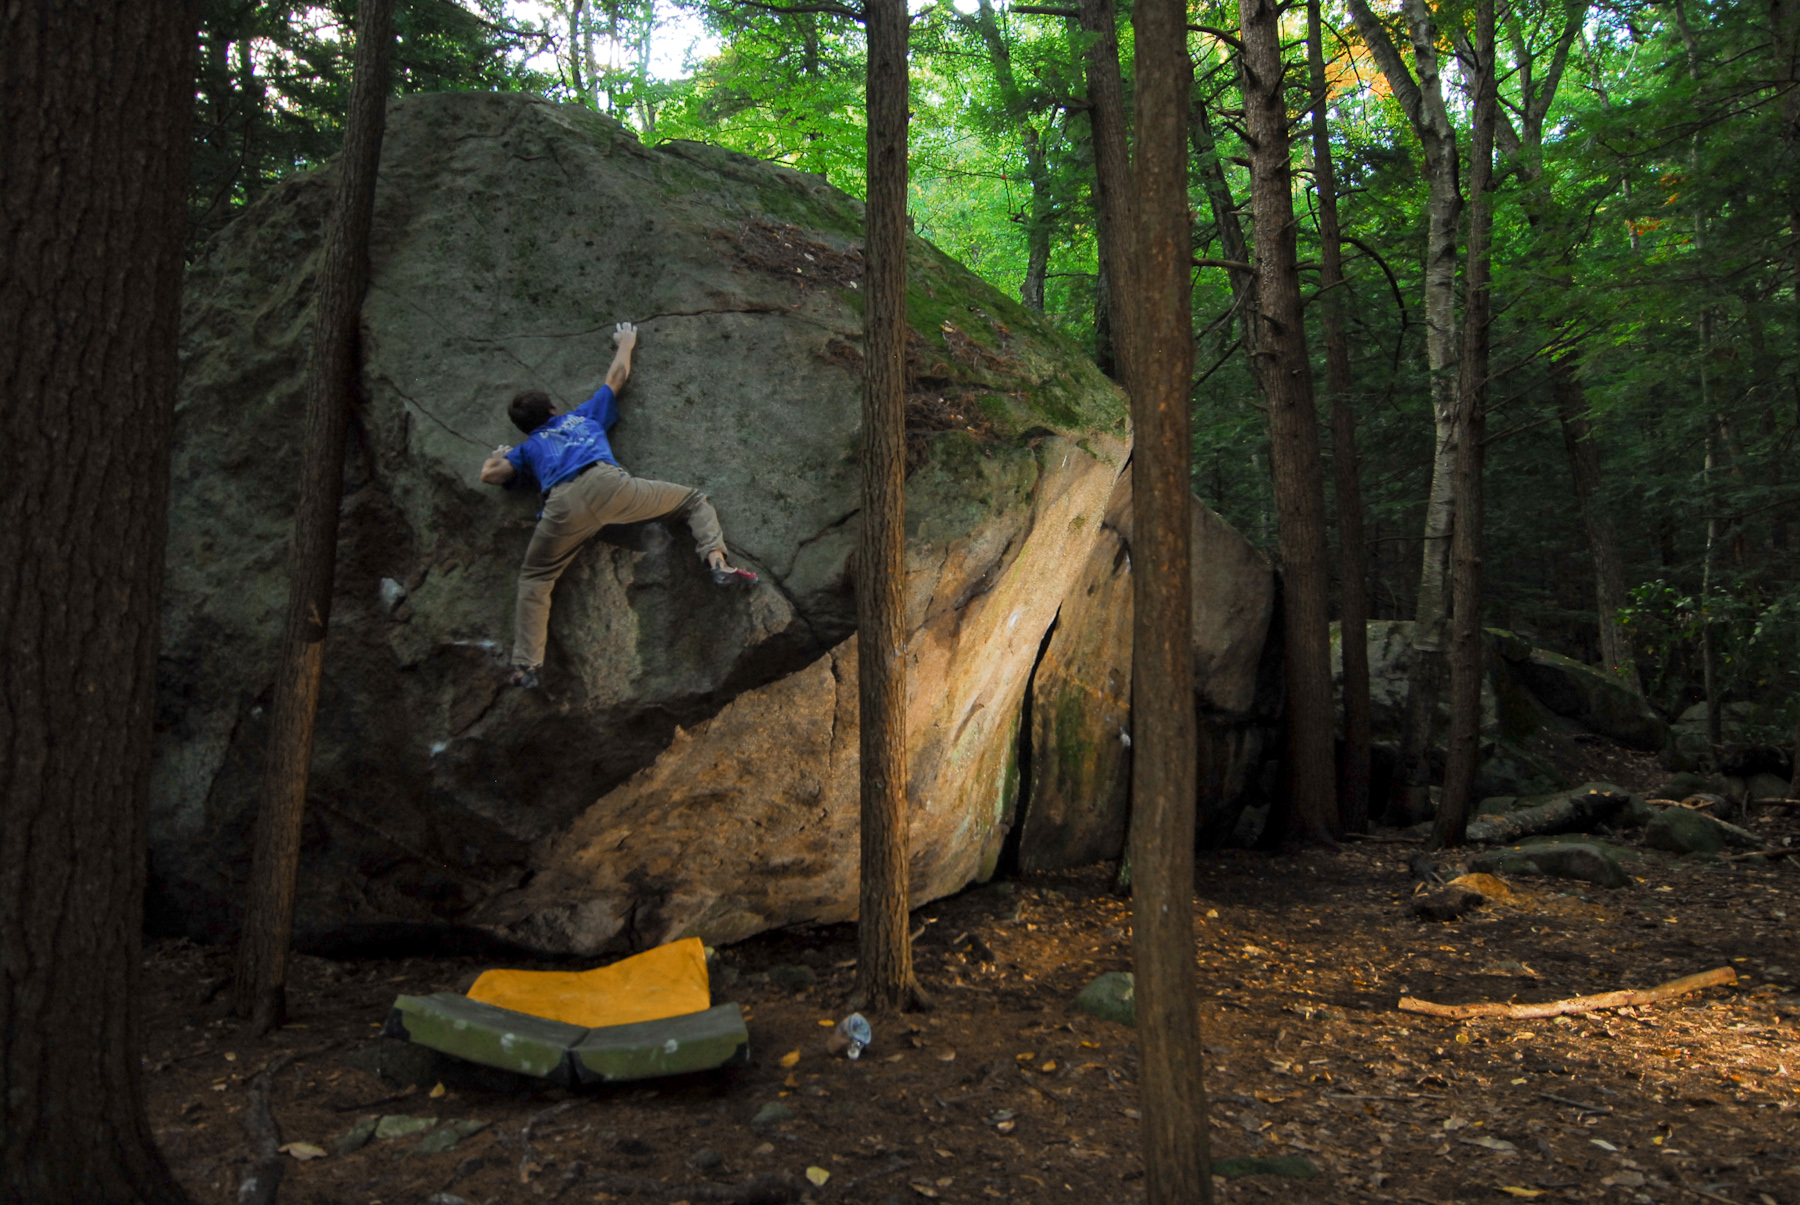 Terrorist Boulder Problem at Pawtuckaway